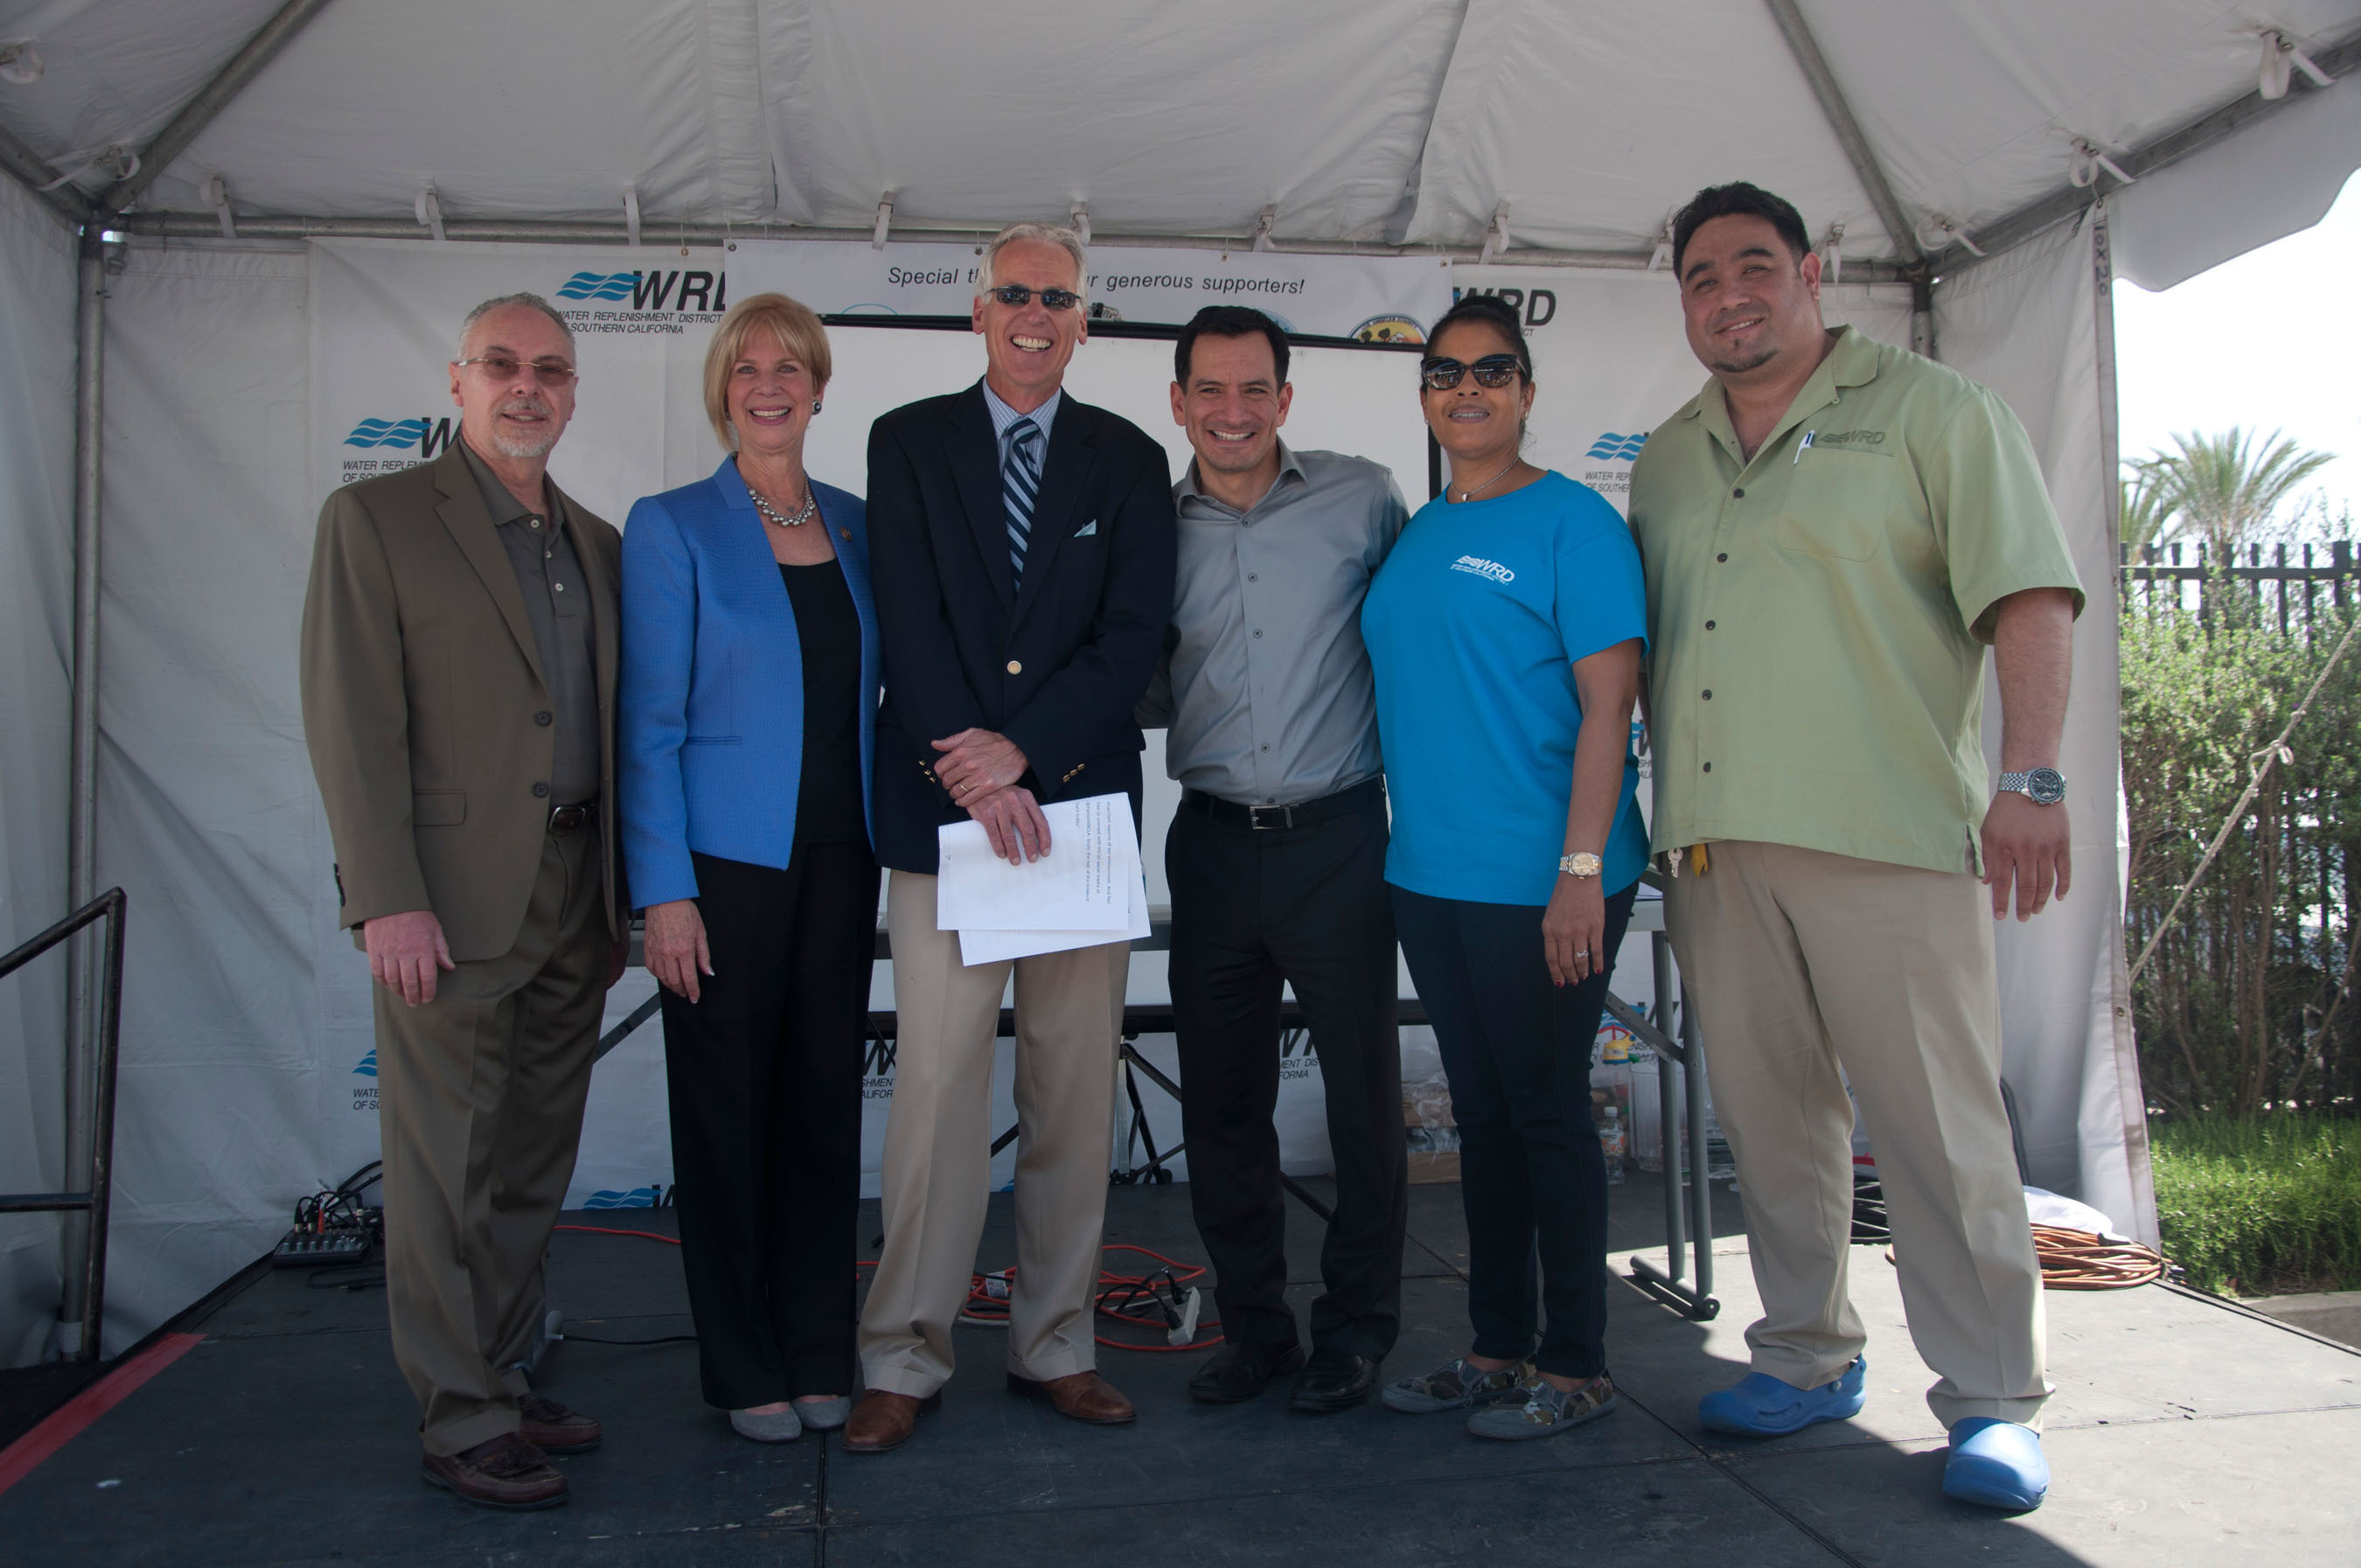 Groundwater Ambassadors: Congresswoman Janice Hahn and Assemblyman Anthony Rendon, along with President Rob Katherman, boardmembers Lynn Dymally, Sergio Calderon, and news anchor Patrick Healy. (PRNewsFoto/Water Replenishment District of Southern California) (PRNewsFoto/WATER REPLENISHMENT DISTRICT...)